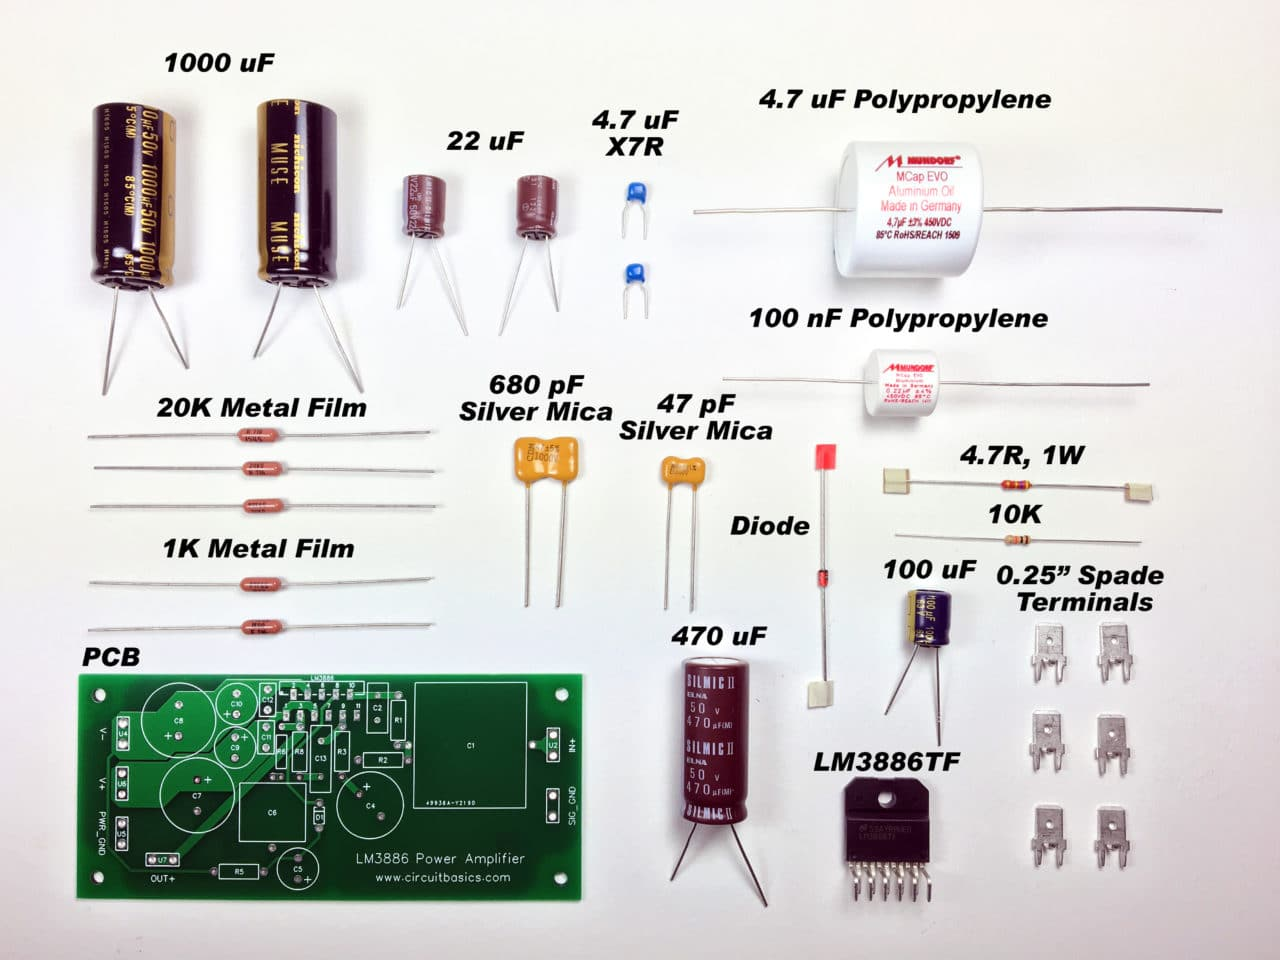 A Complete Guide To Design And Build Hi Fi Lm3886 Amplifier Diode Wiring Diagram Get Free Image About The Total Cost Came 118 For Both Channels Not Including Chassis Power Supply Parts You Can It Lot Less With Cheaper